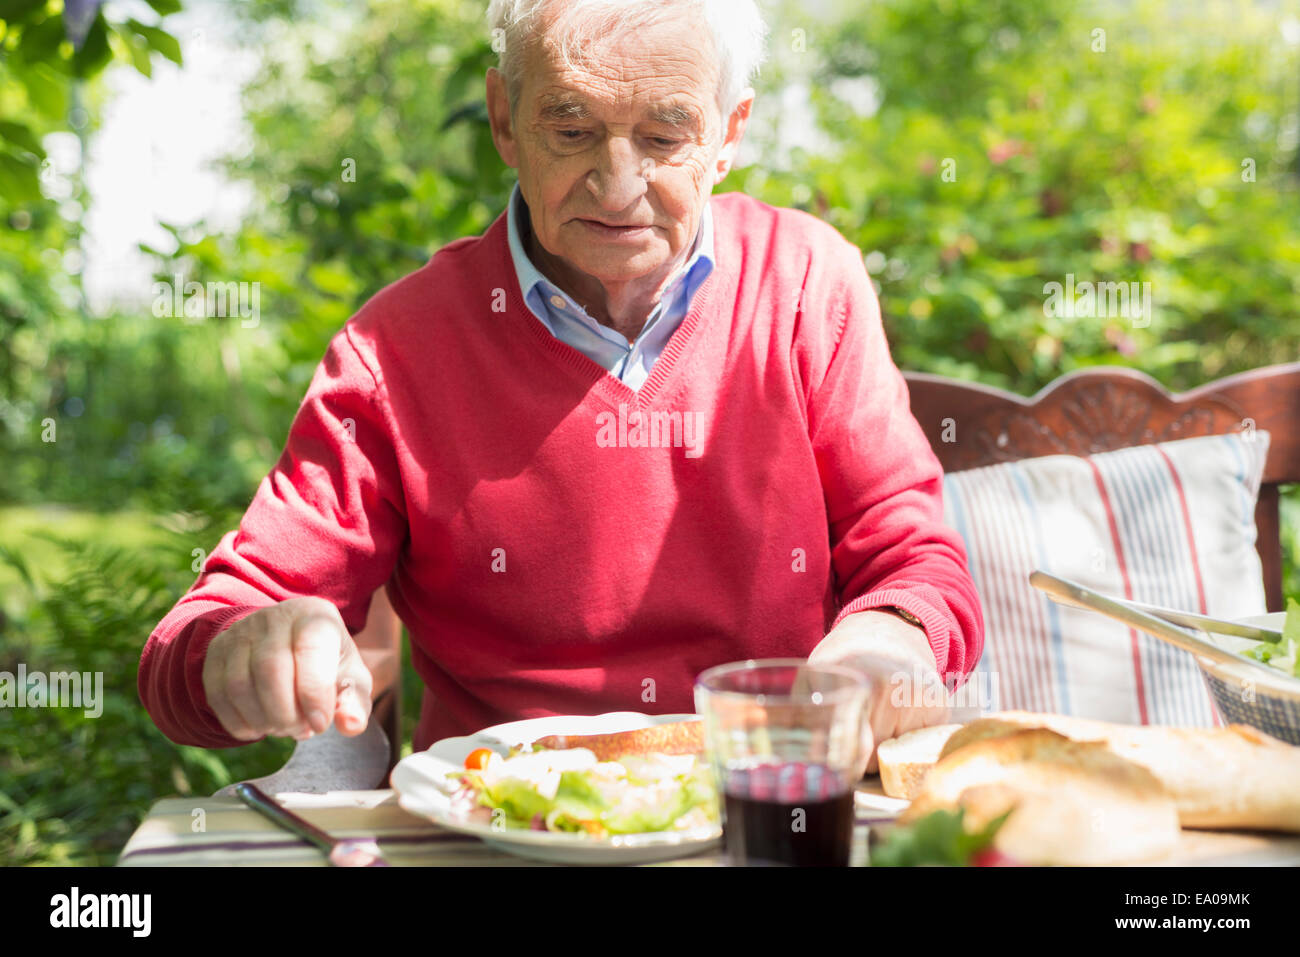 Senior man having lunch outdoors - Stock Image